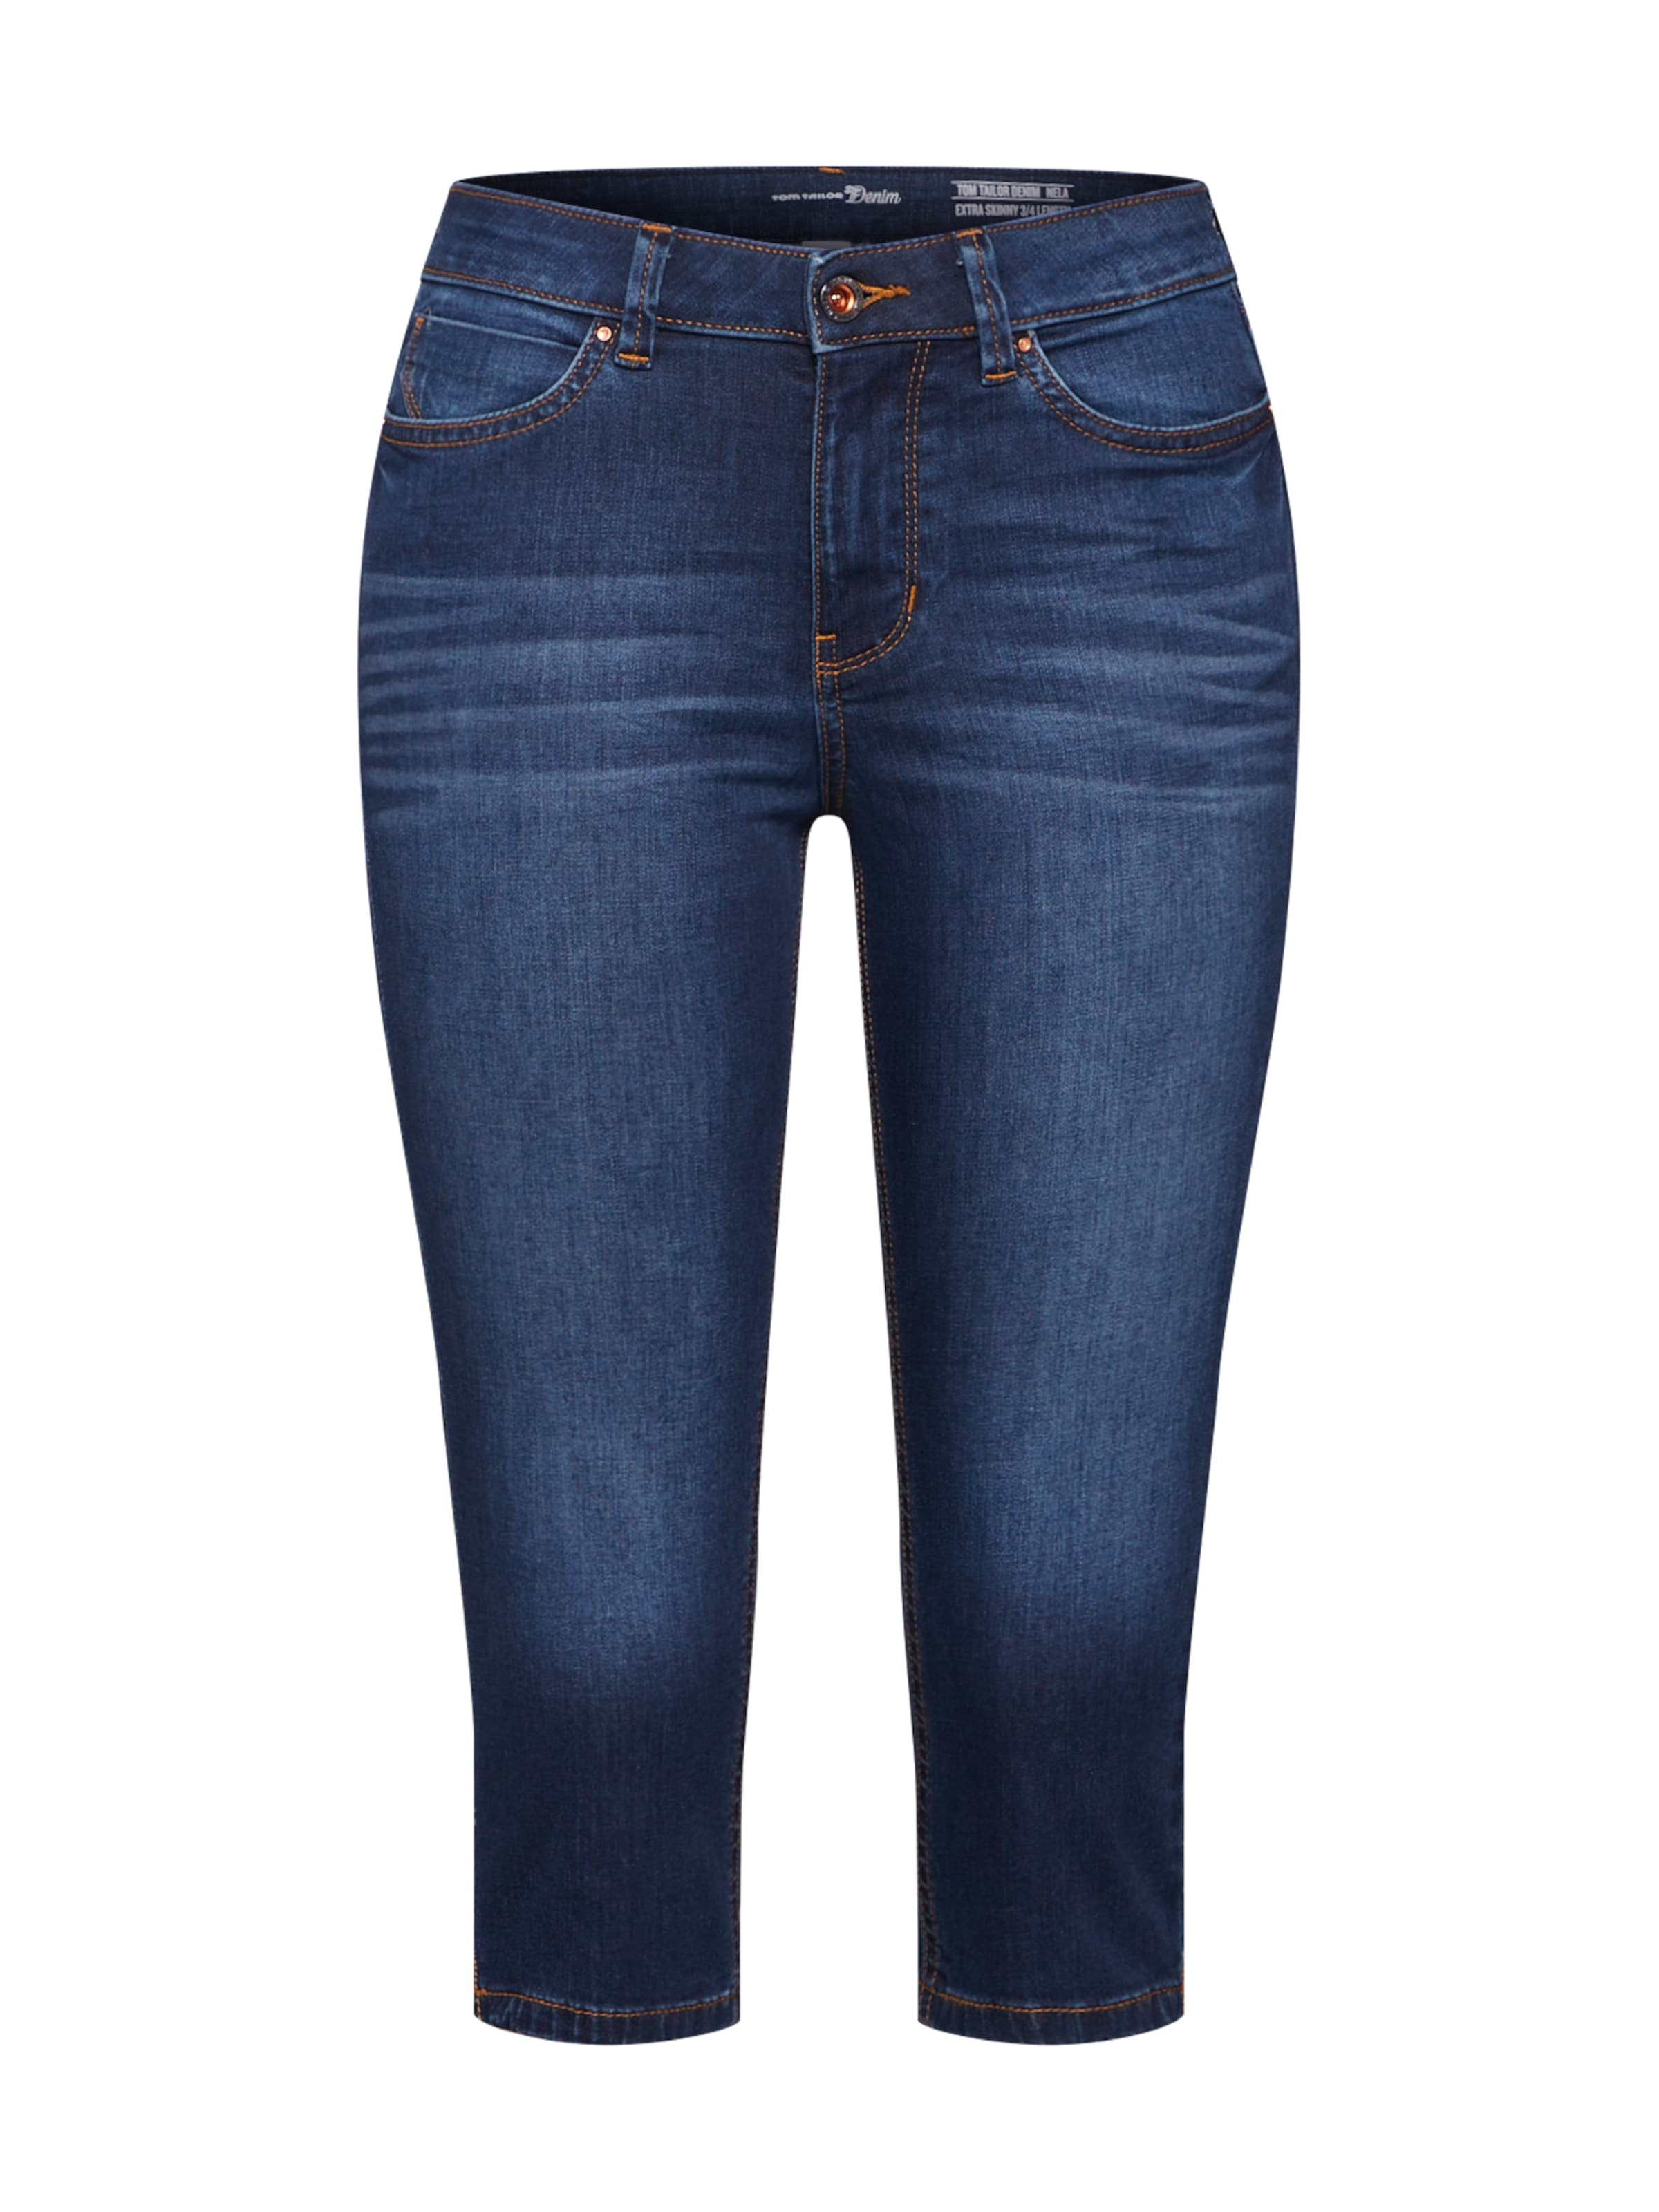 Denim Blue Jeans In Tailor Tom fYbyg76